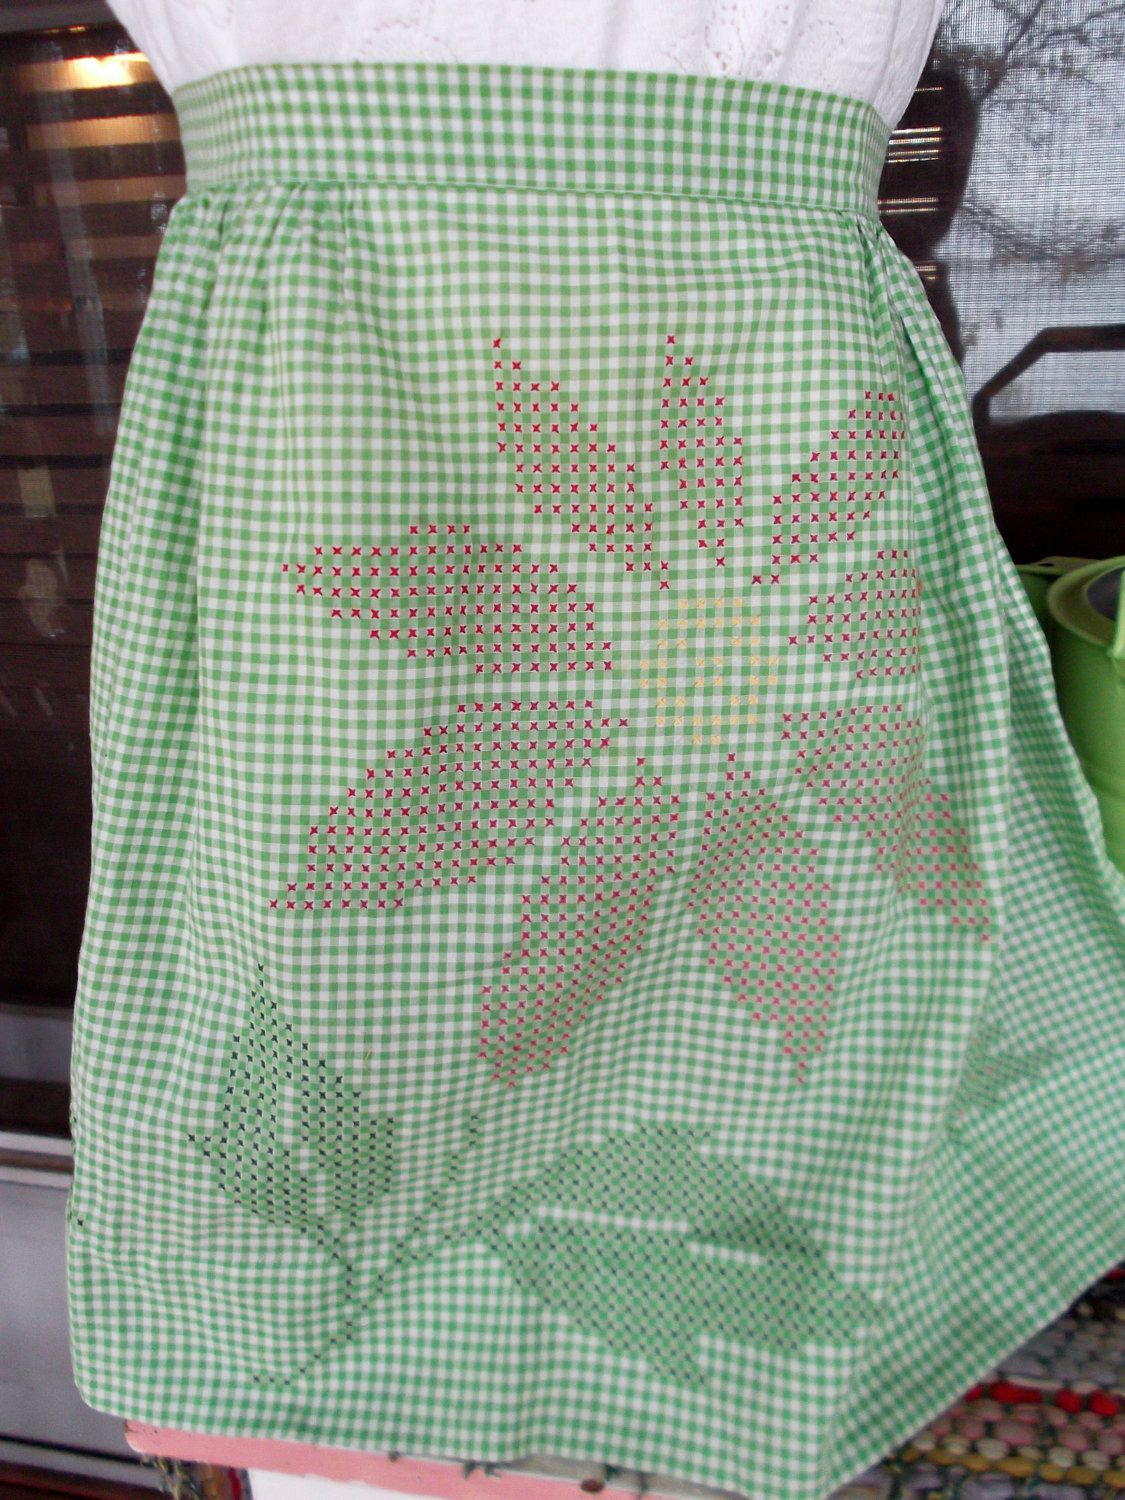 White half apron vintage - Vintage Holiday Green And White Gingham Half Apron With Chicken Scratch Embroidery Poinsettia 16 00